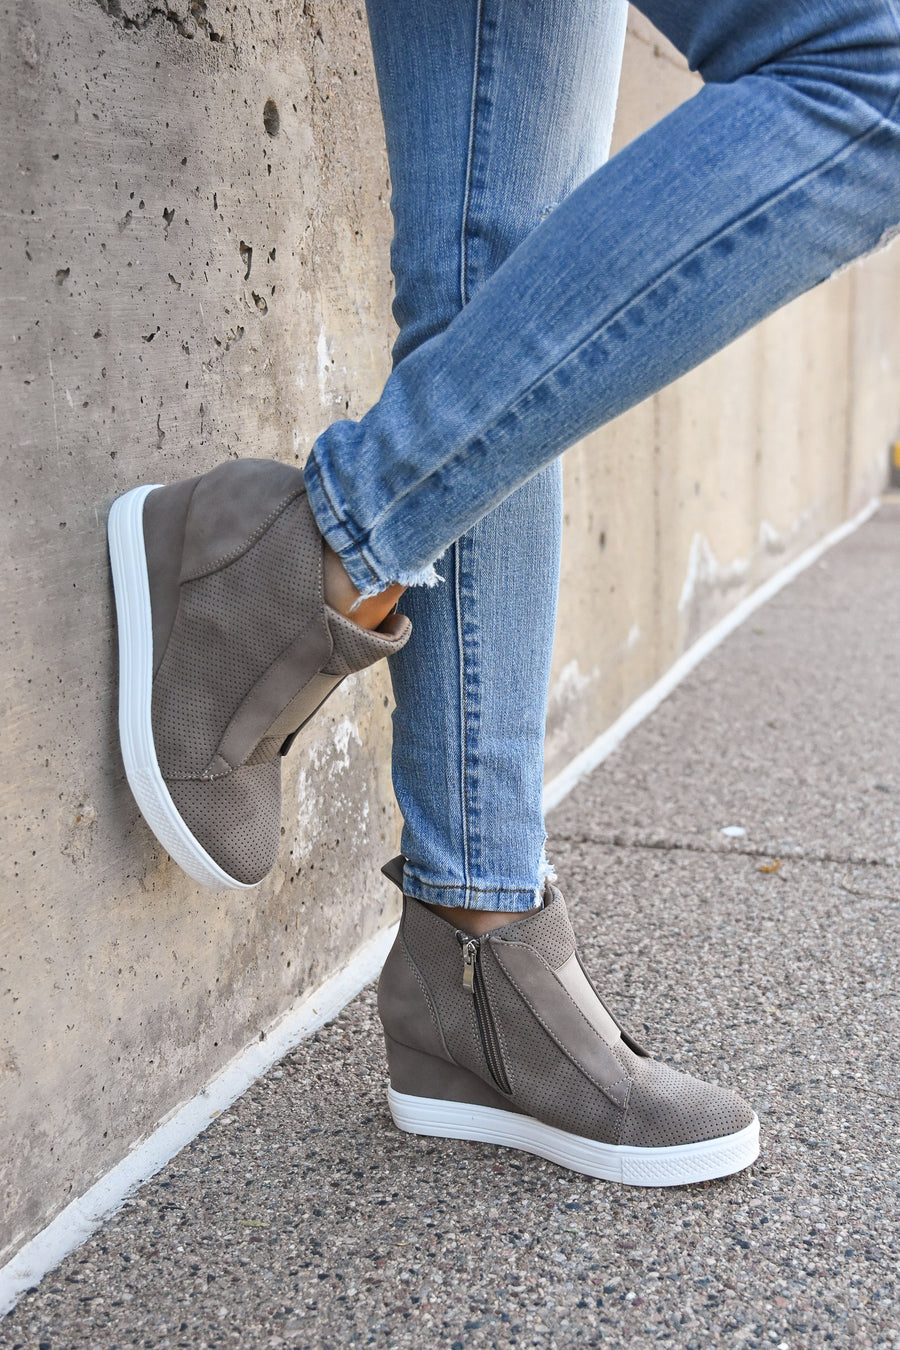 Zoey Wedge Sneakers - Taupe women's laceless sneakers with wedge heel sole, Closet Candy Boutique 1